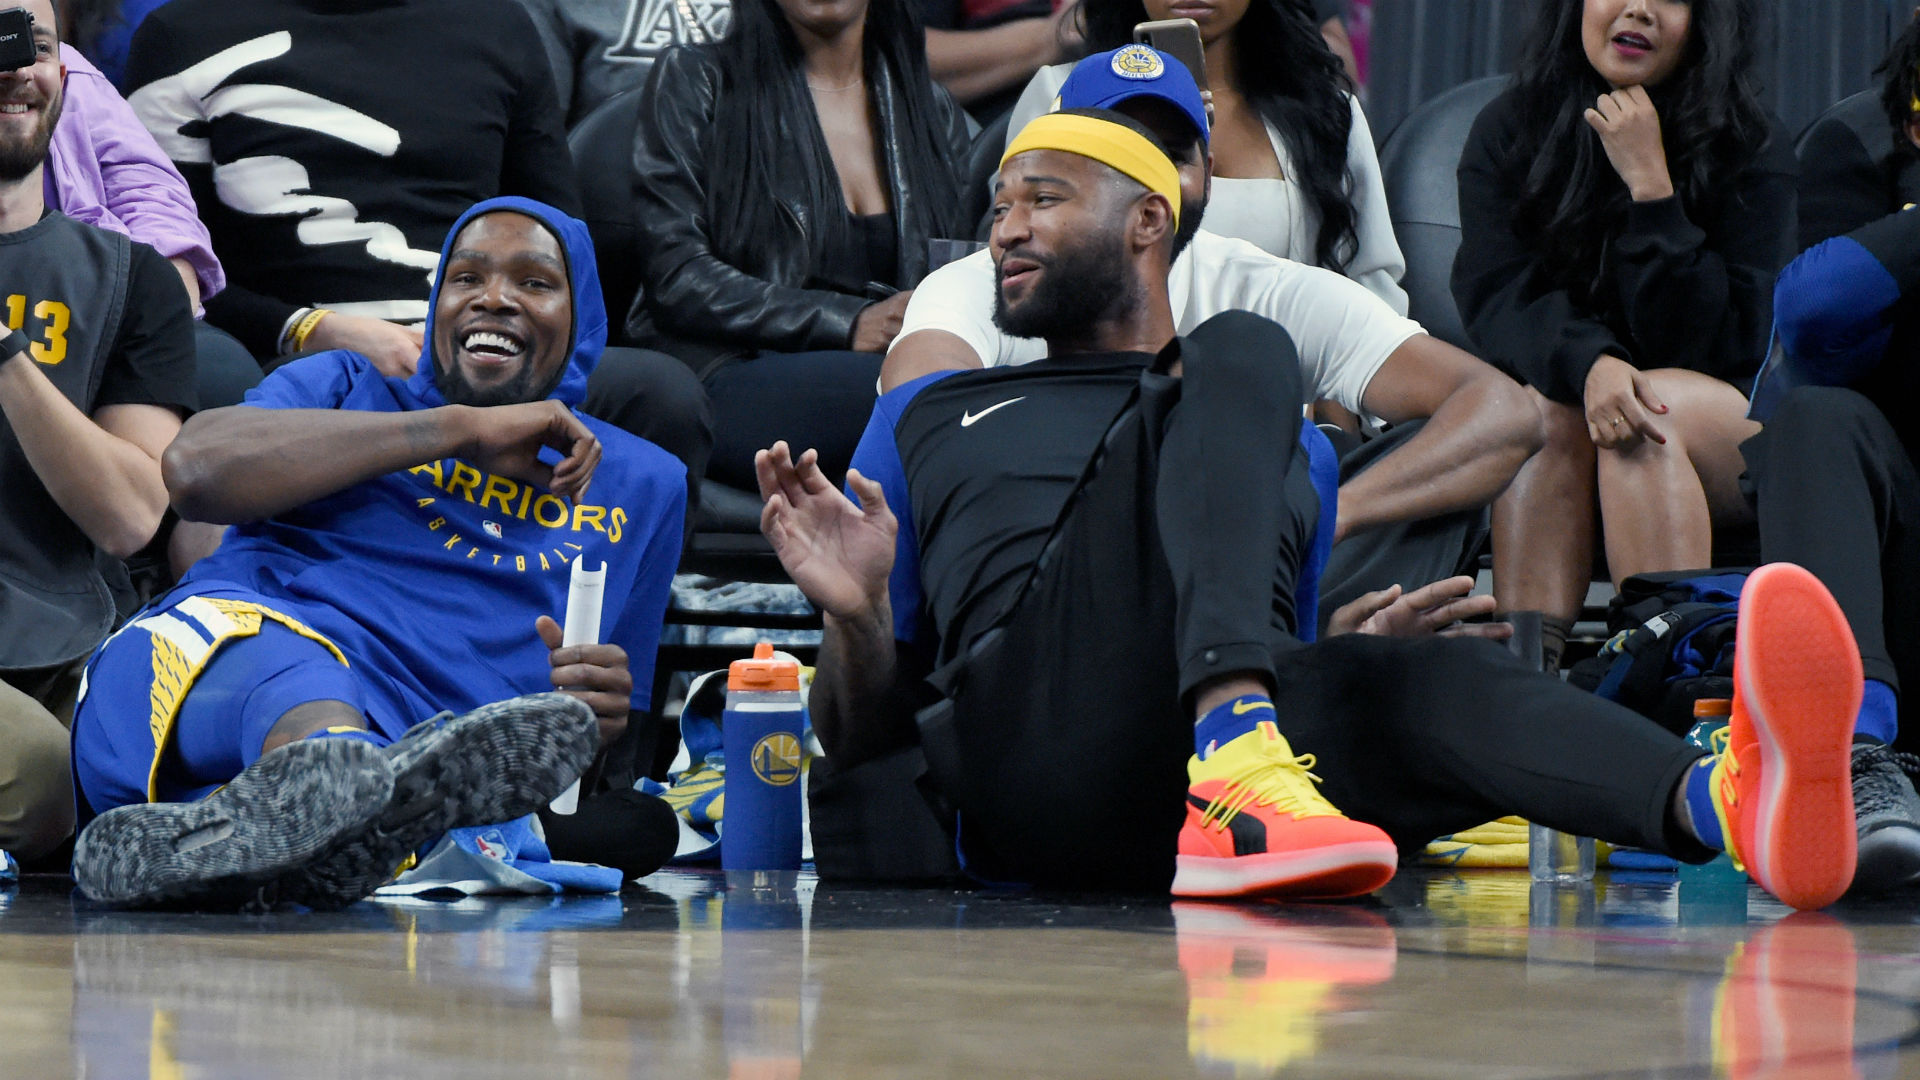 Cousins dunks on Durant in game of one-on-one